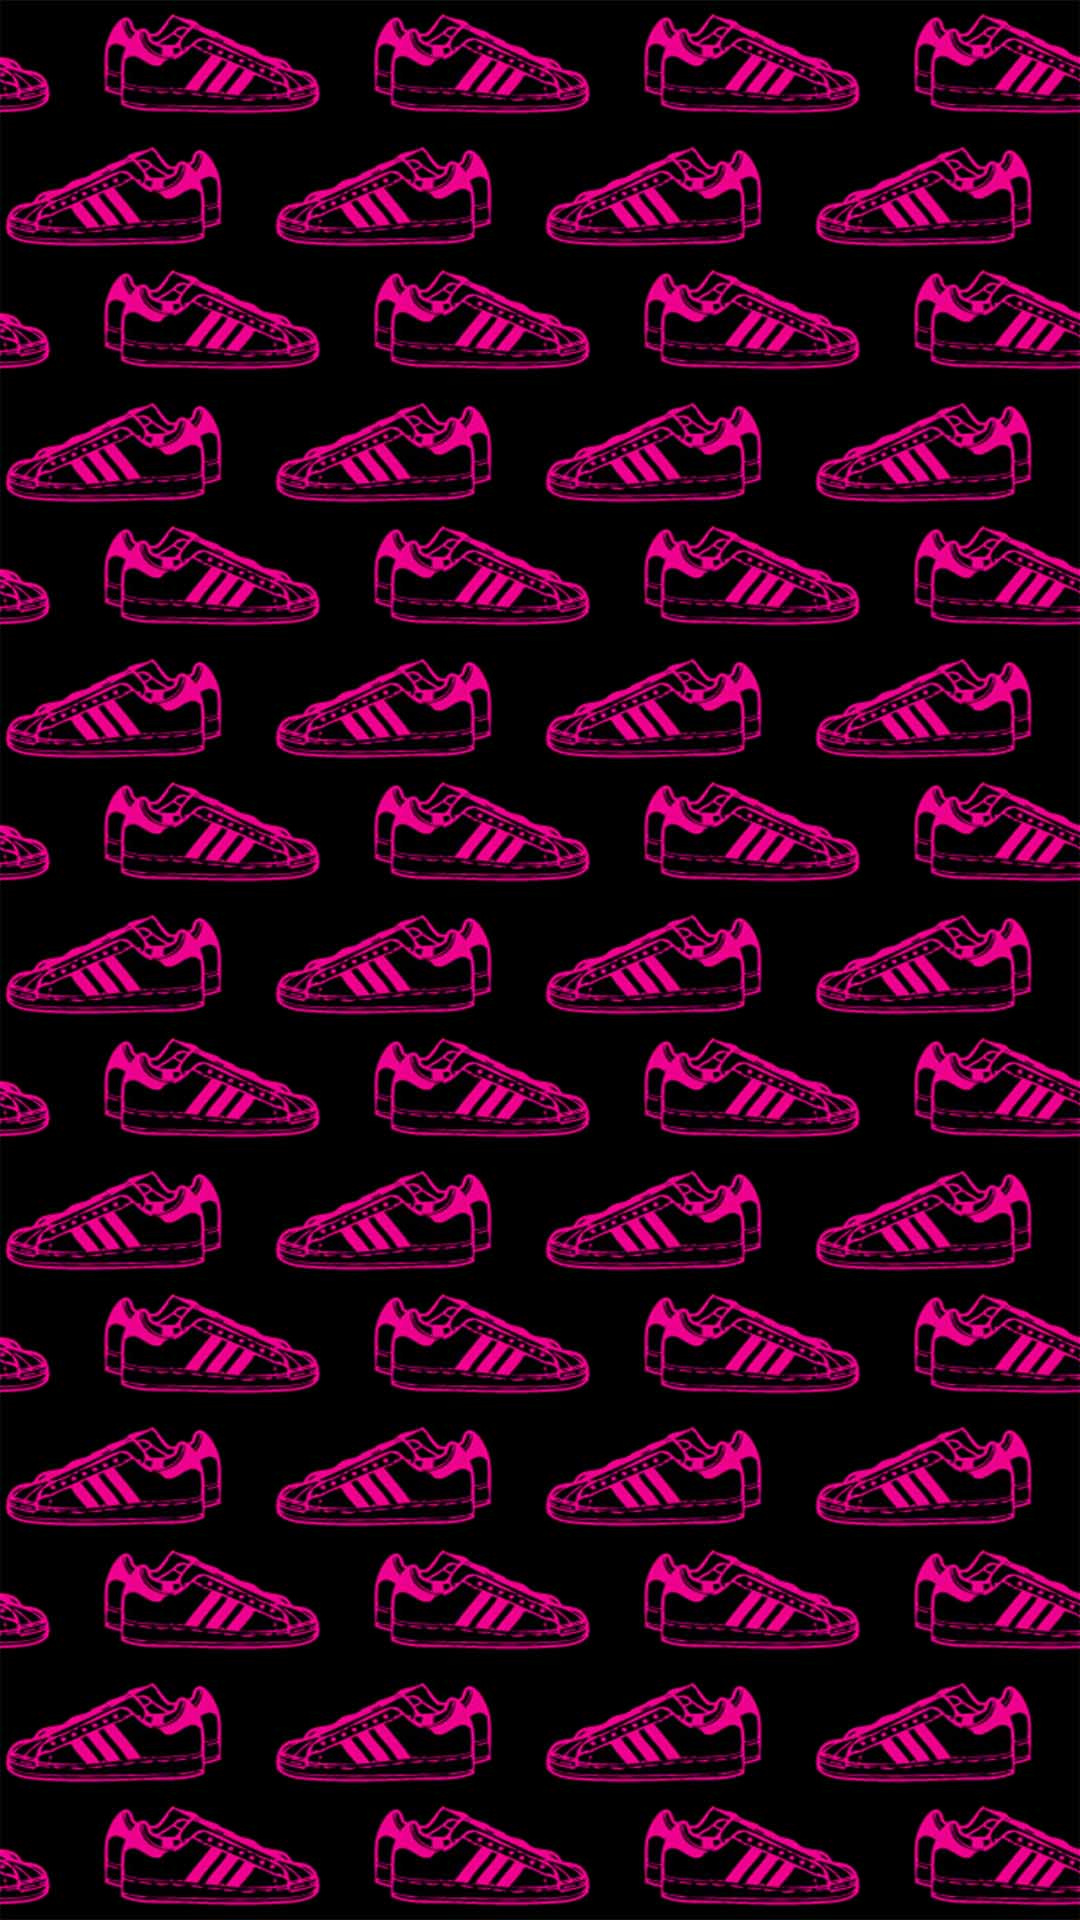 Adidas Wallpaper For Iphone X 8 7 6 Free Download On 3wallpapers